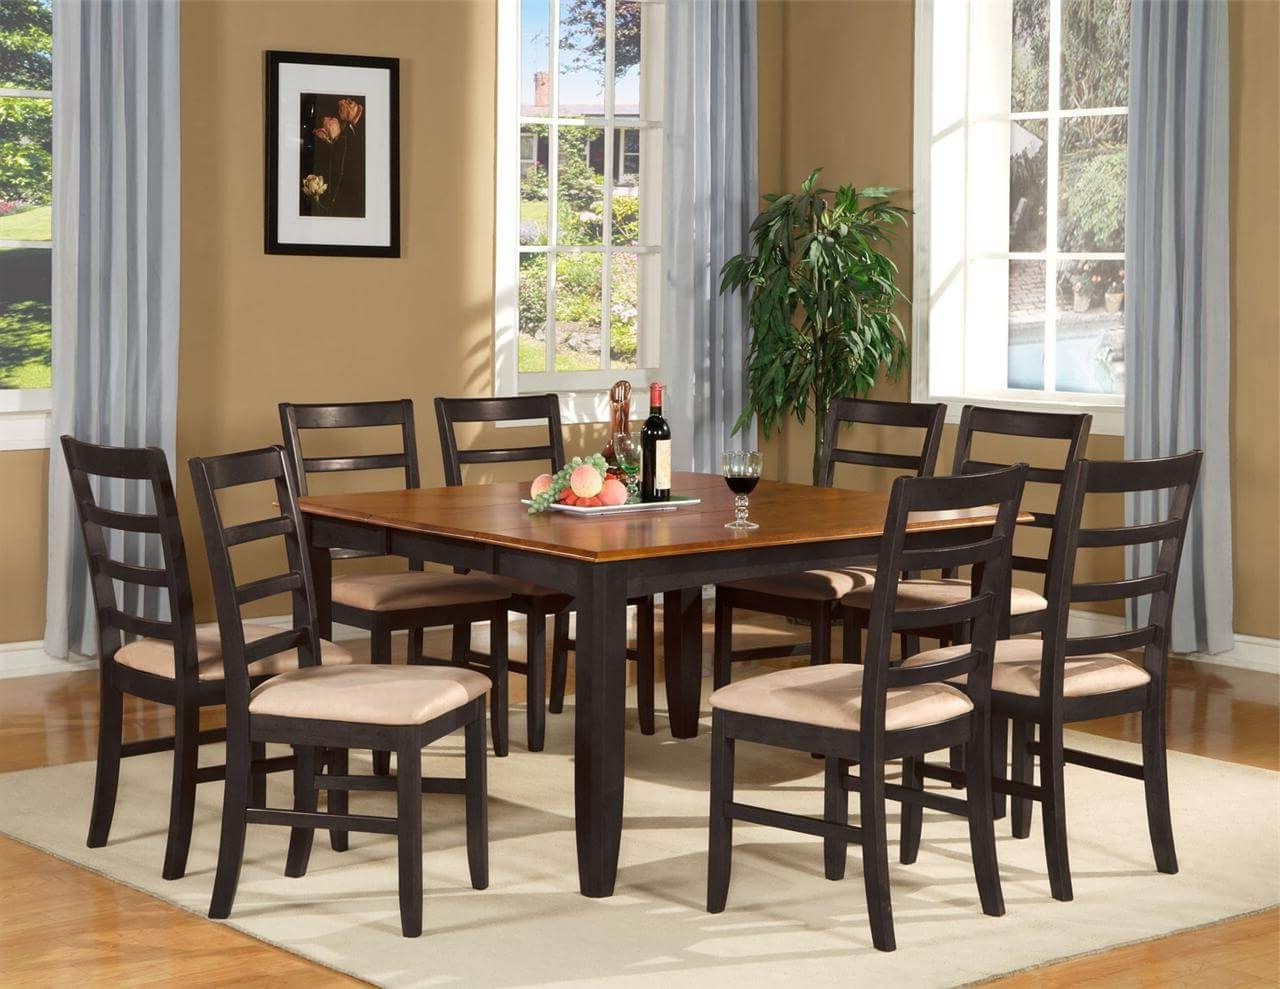 Retro Round Glasstop Dining Tables Regarding Popular Astounding Chairs Set Round Table Extendable Clearance (View 28 of 30)